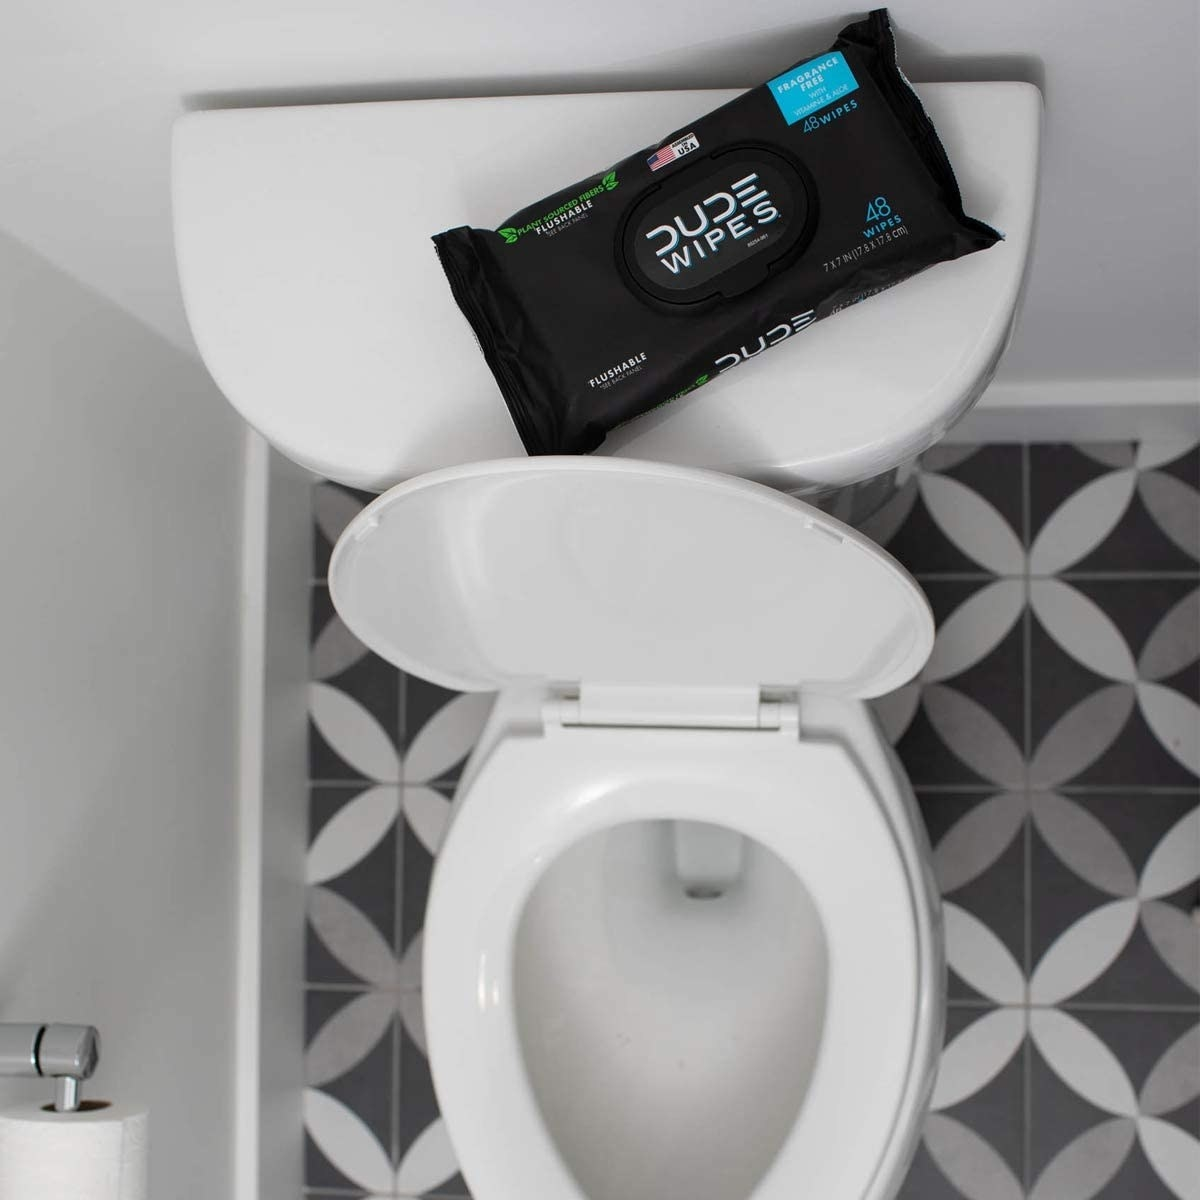 pack of Dude wipes on a toilet